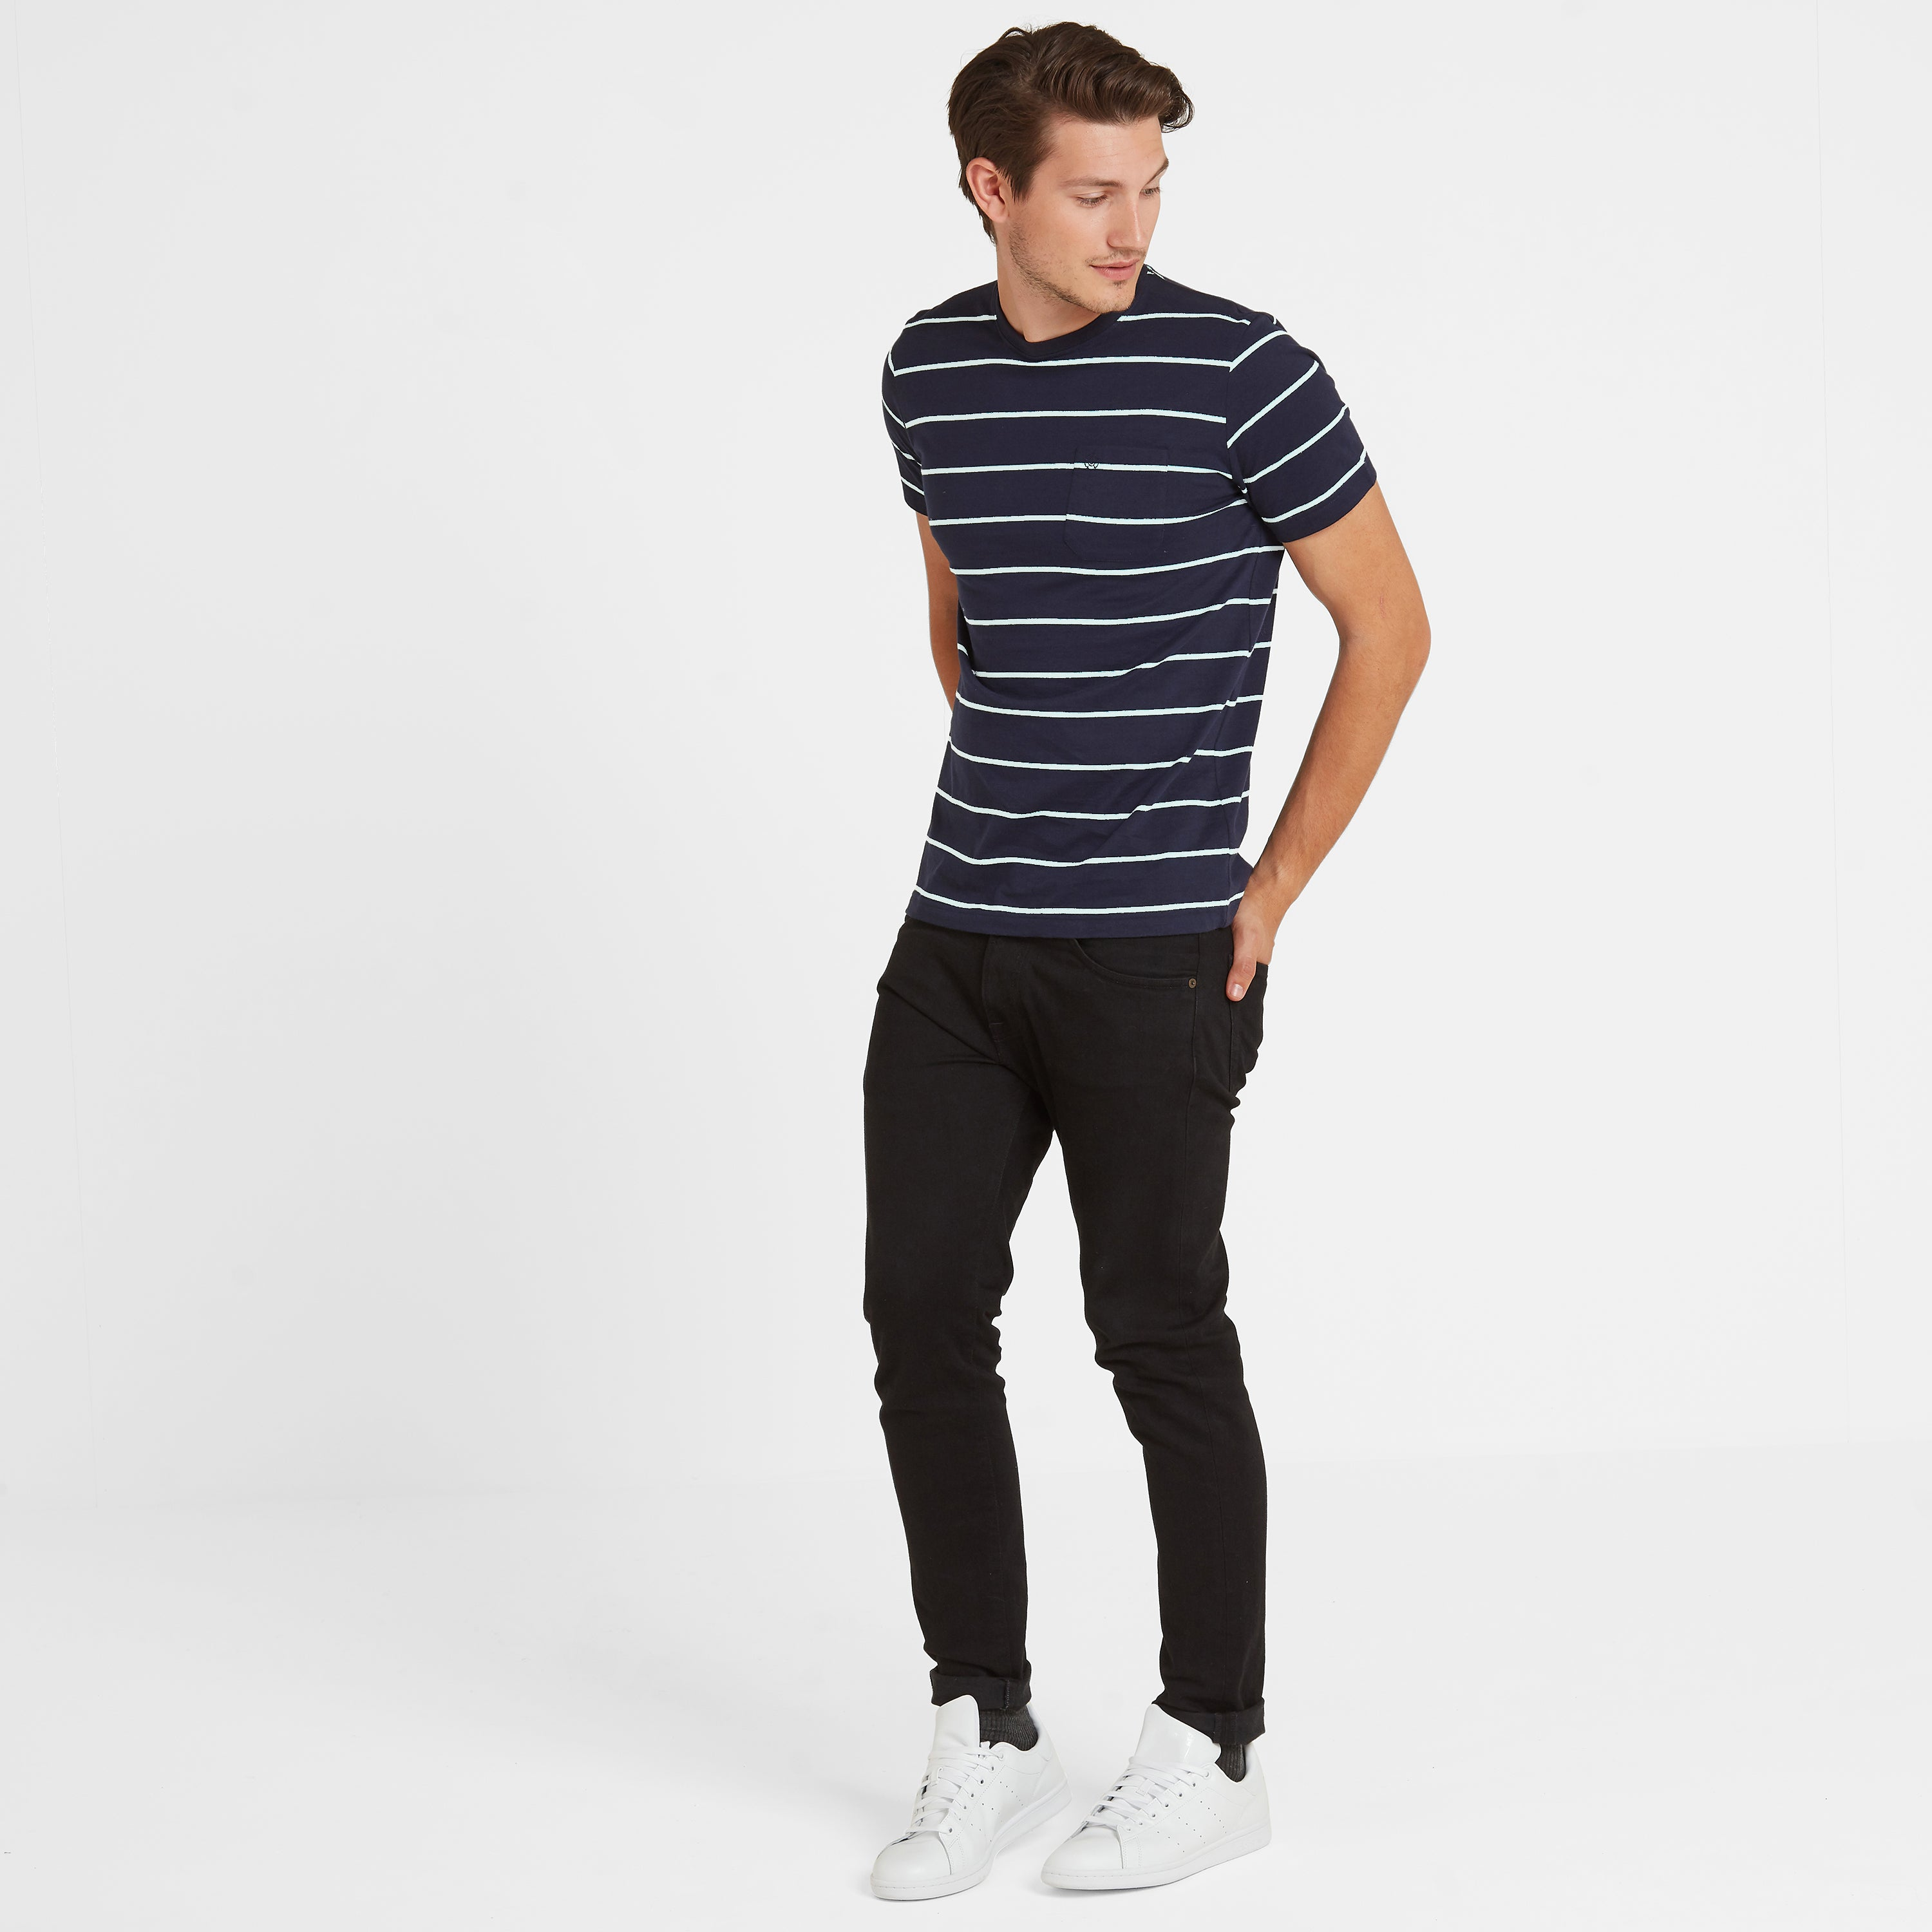 Elliot Stripe Mens T-Shirt - Navy/White